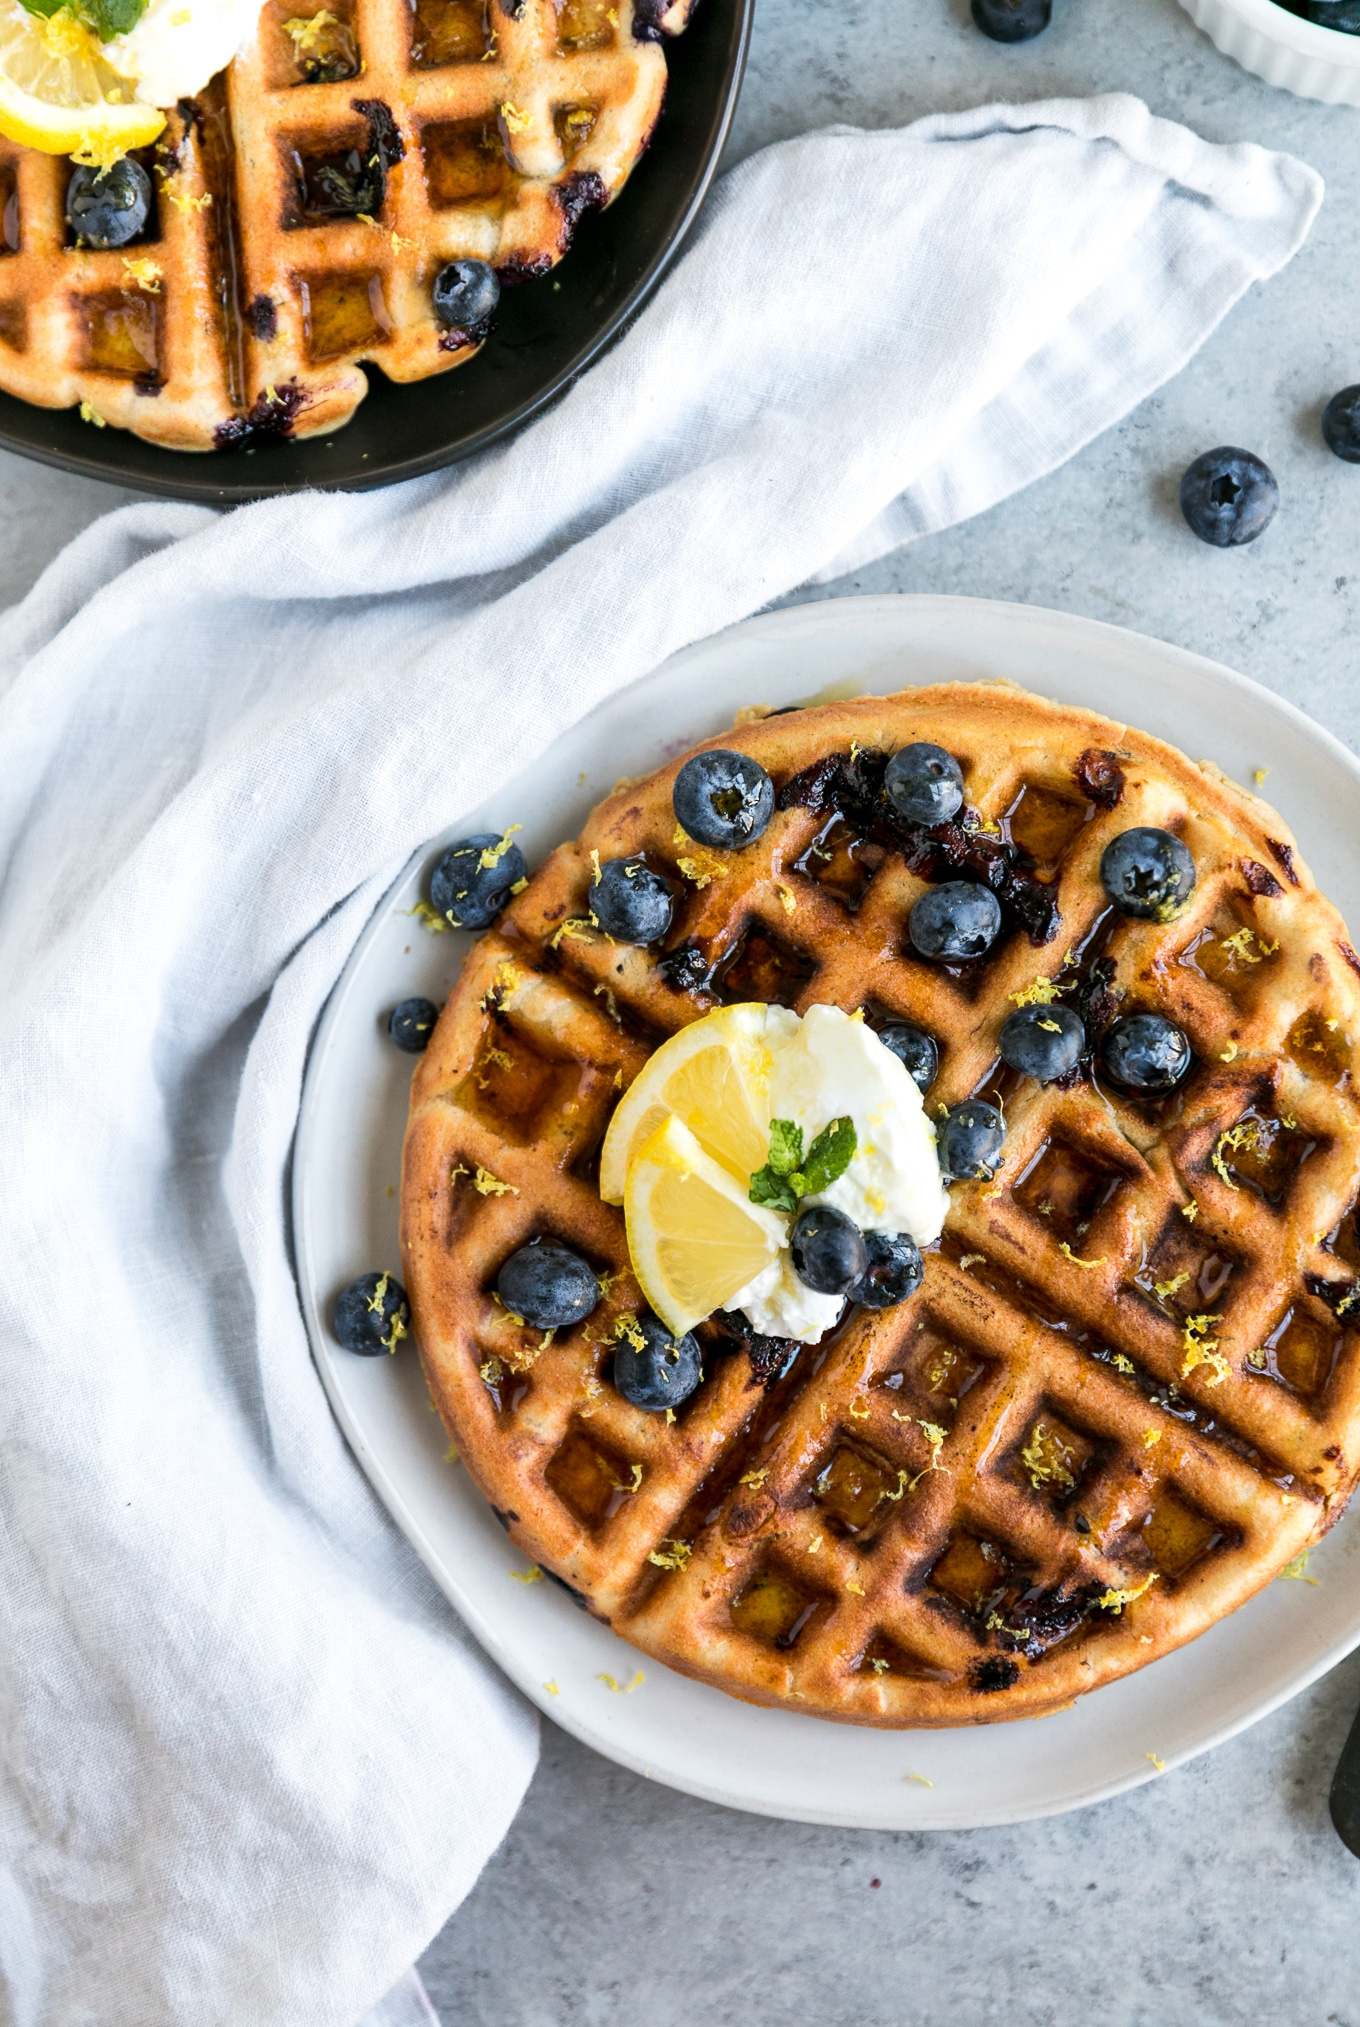 Overhead shot of a waffle topped with blueberries, greek yogurt, and lemon slices